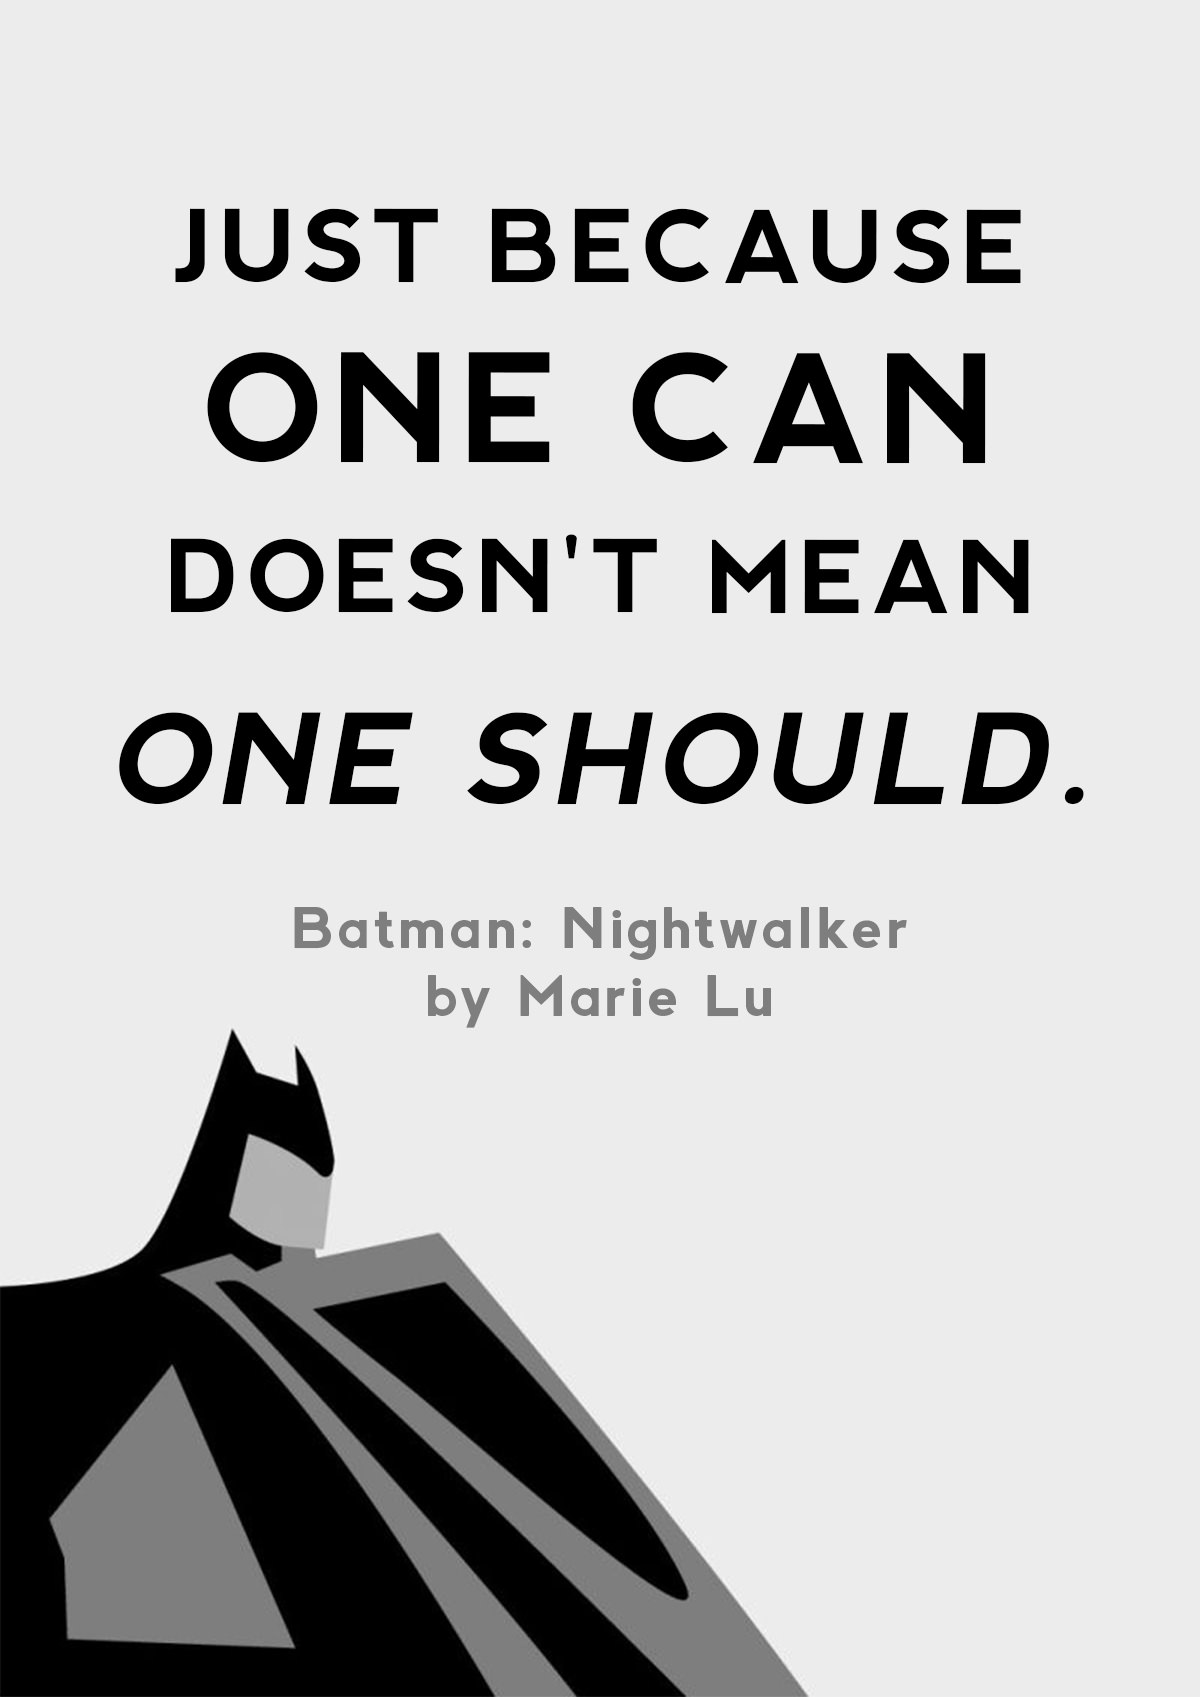 Batman Nightwalker by Marie Lu Quote - Just Because